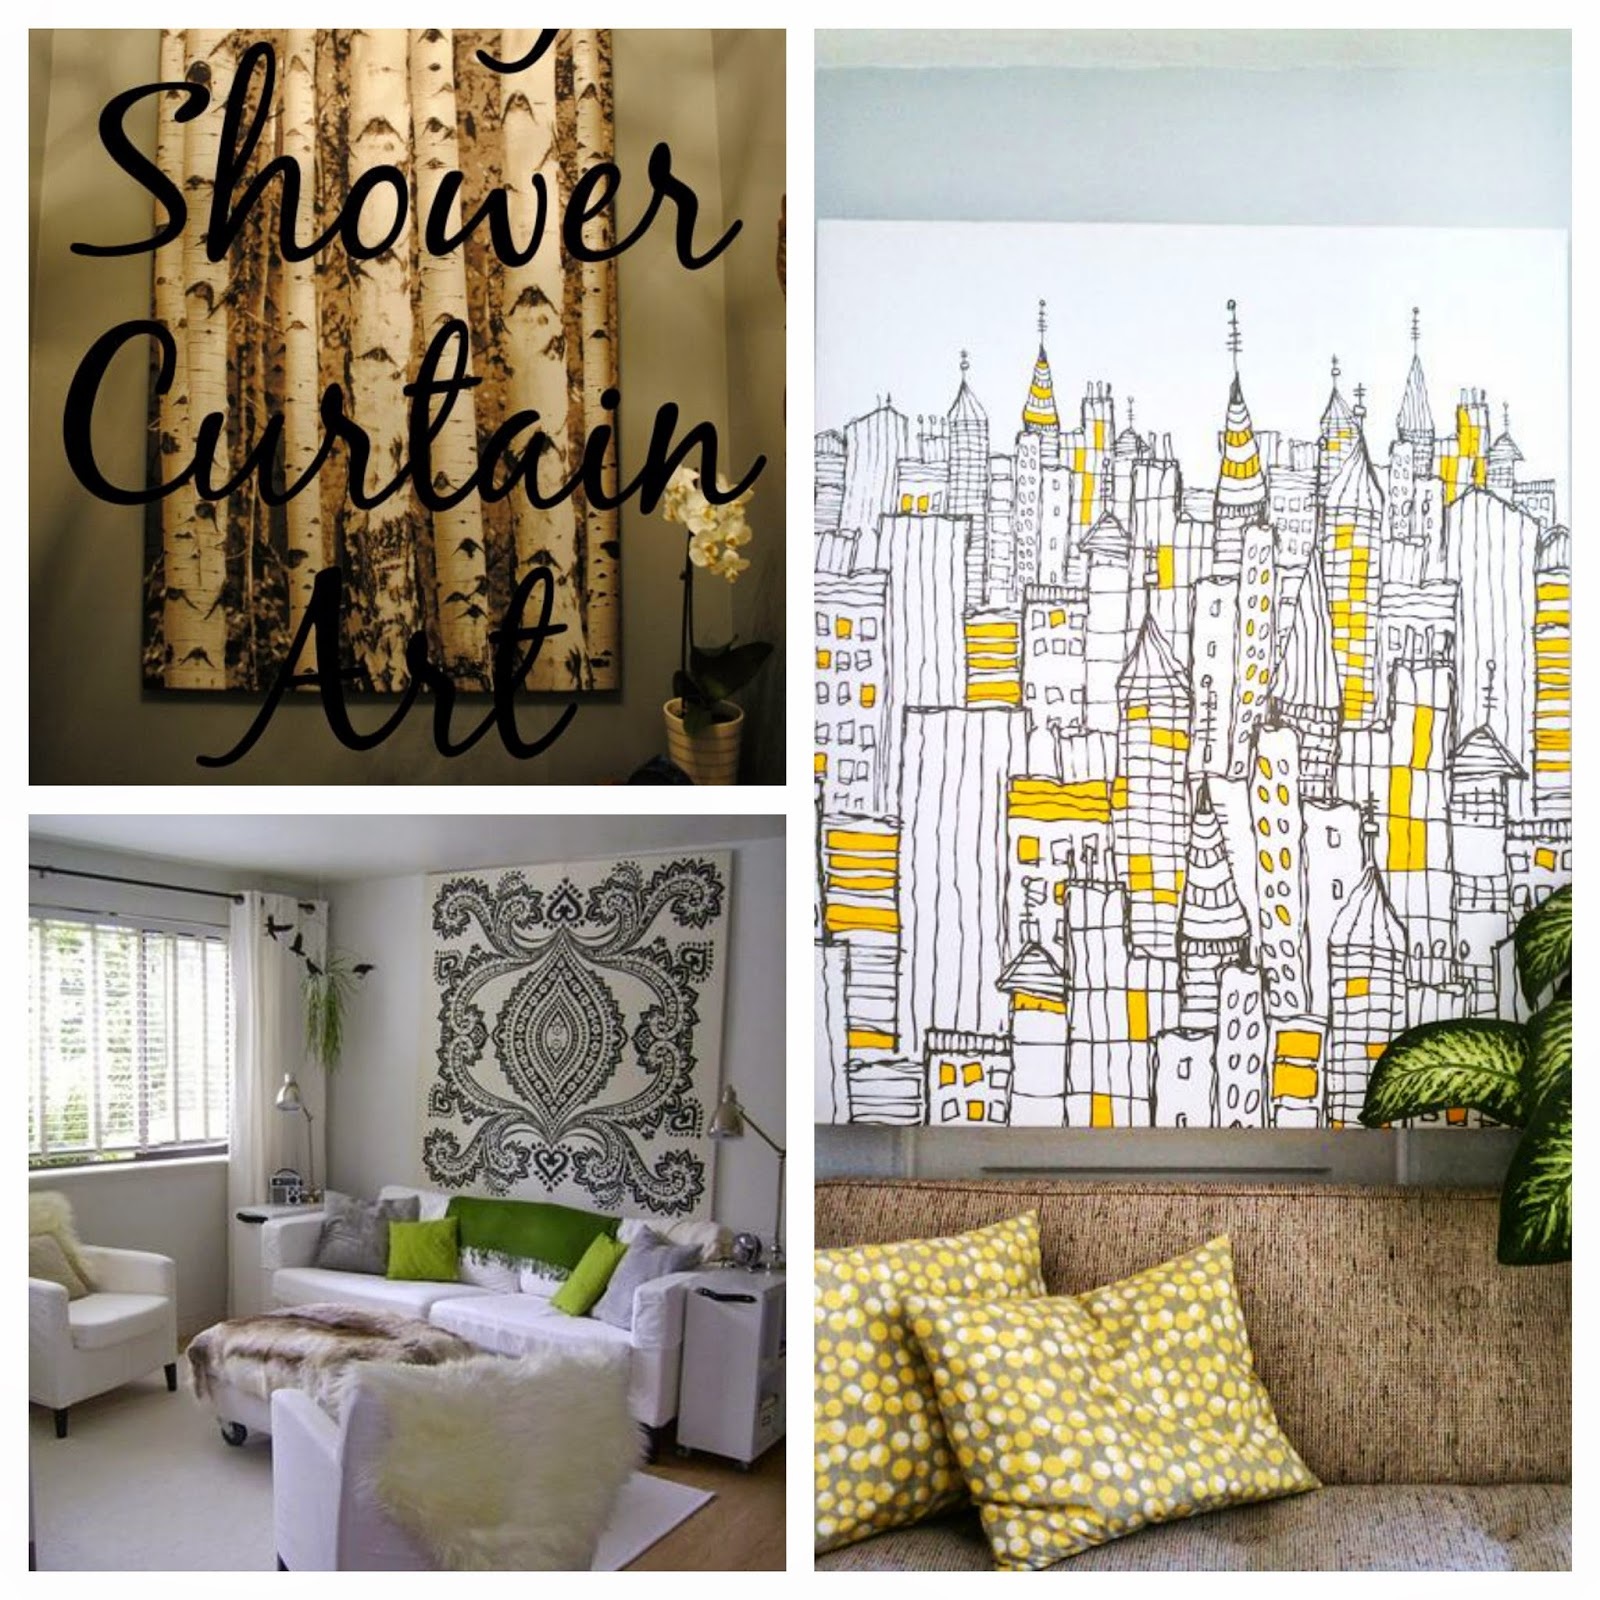 shower curtain wall art